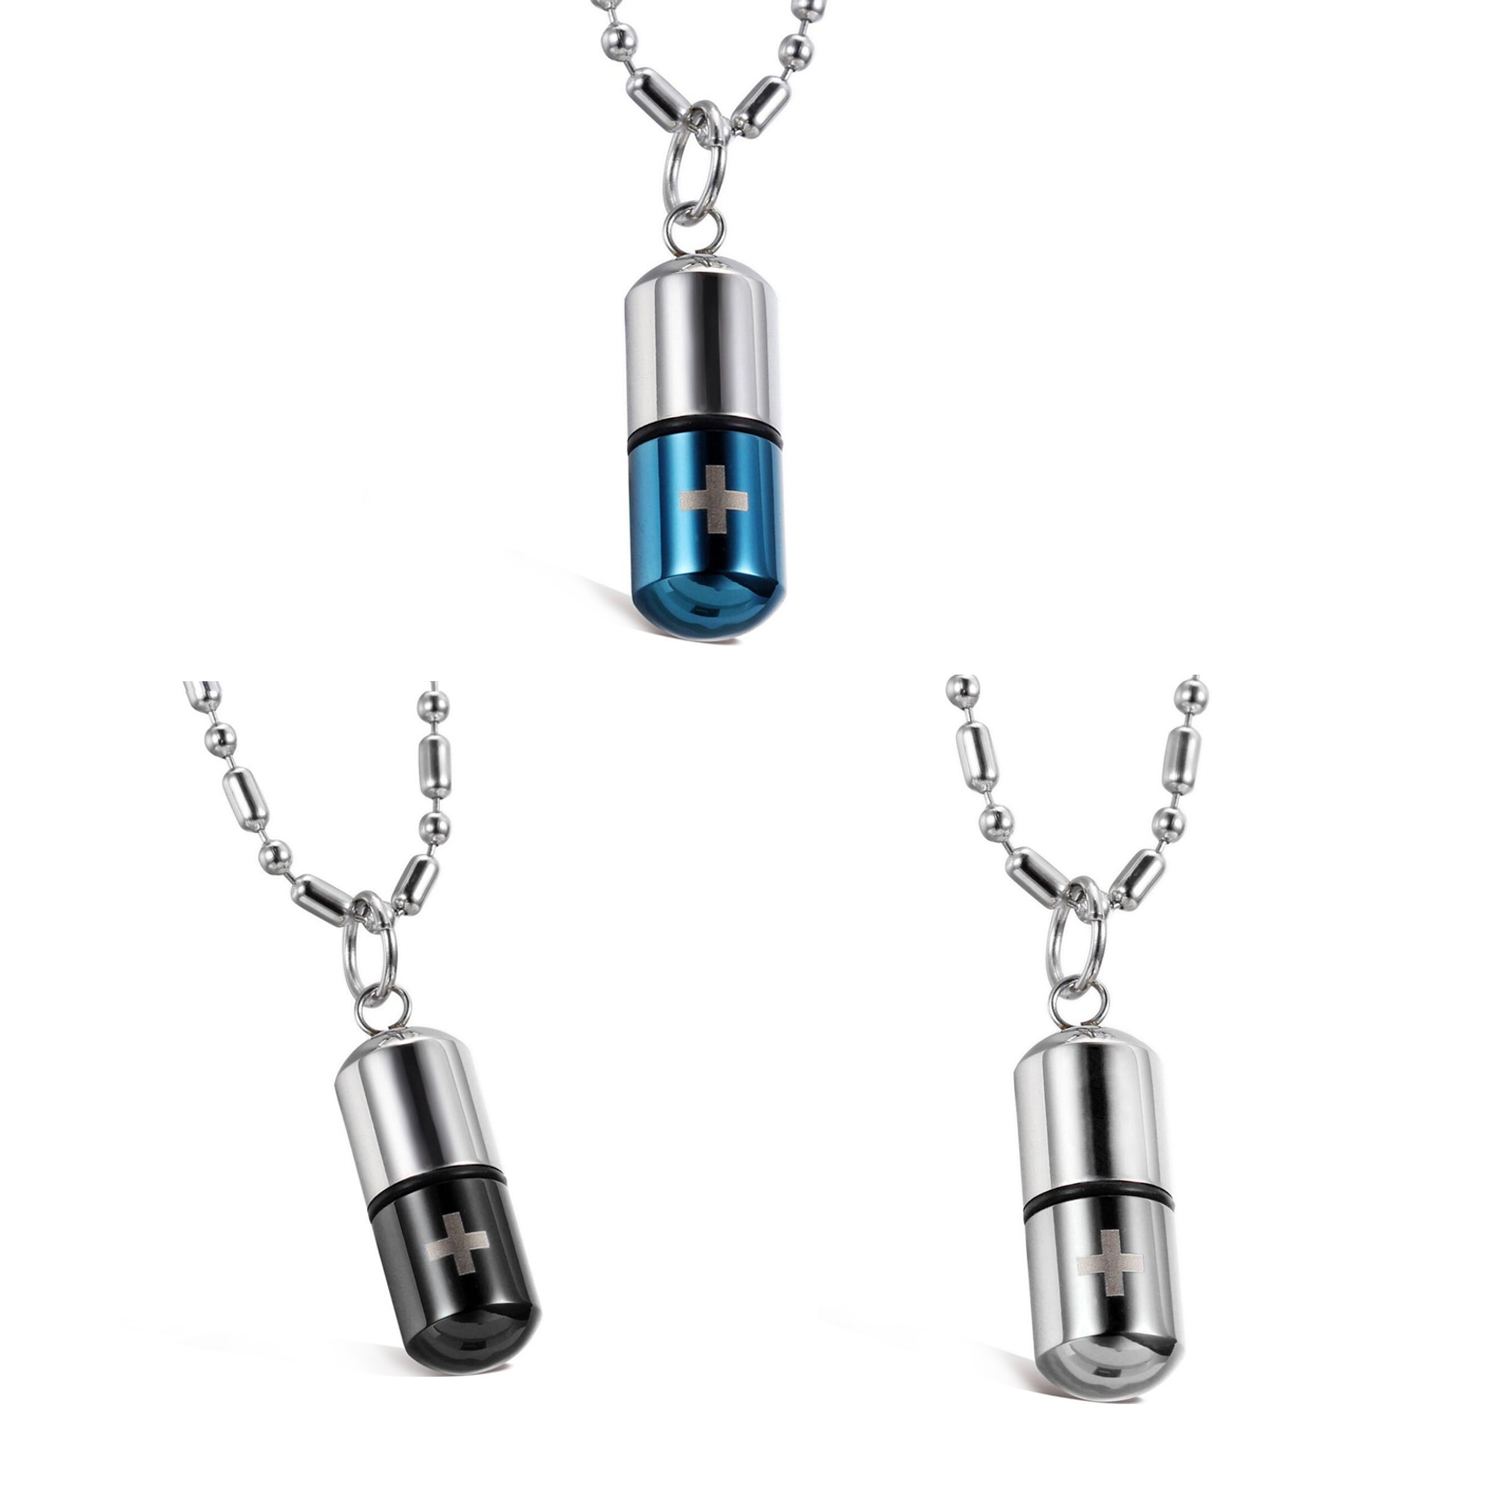 Stainless Steel LOVE Pill Case Container Pendant Necklace Leather Chain 1 PC